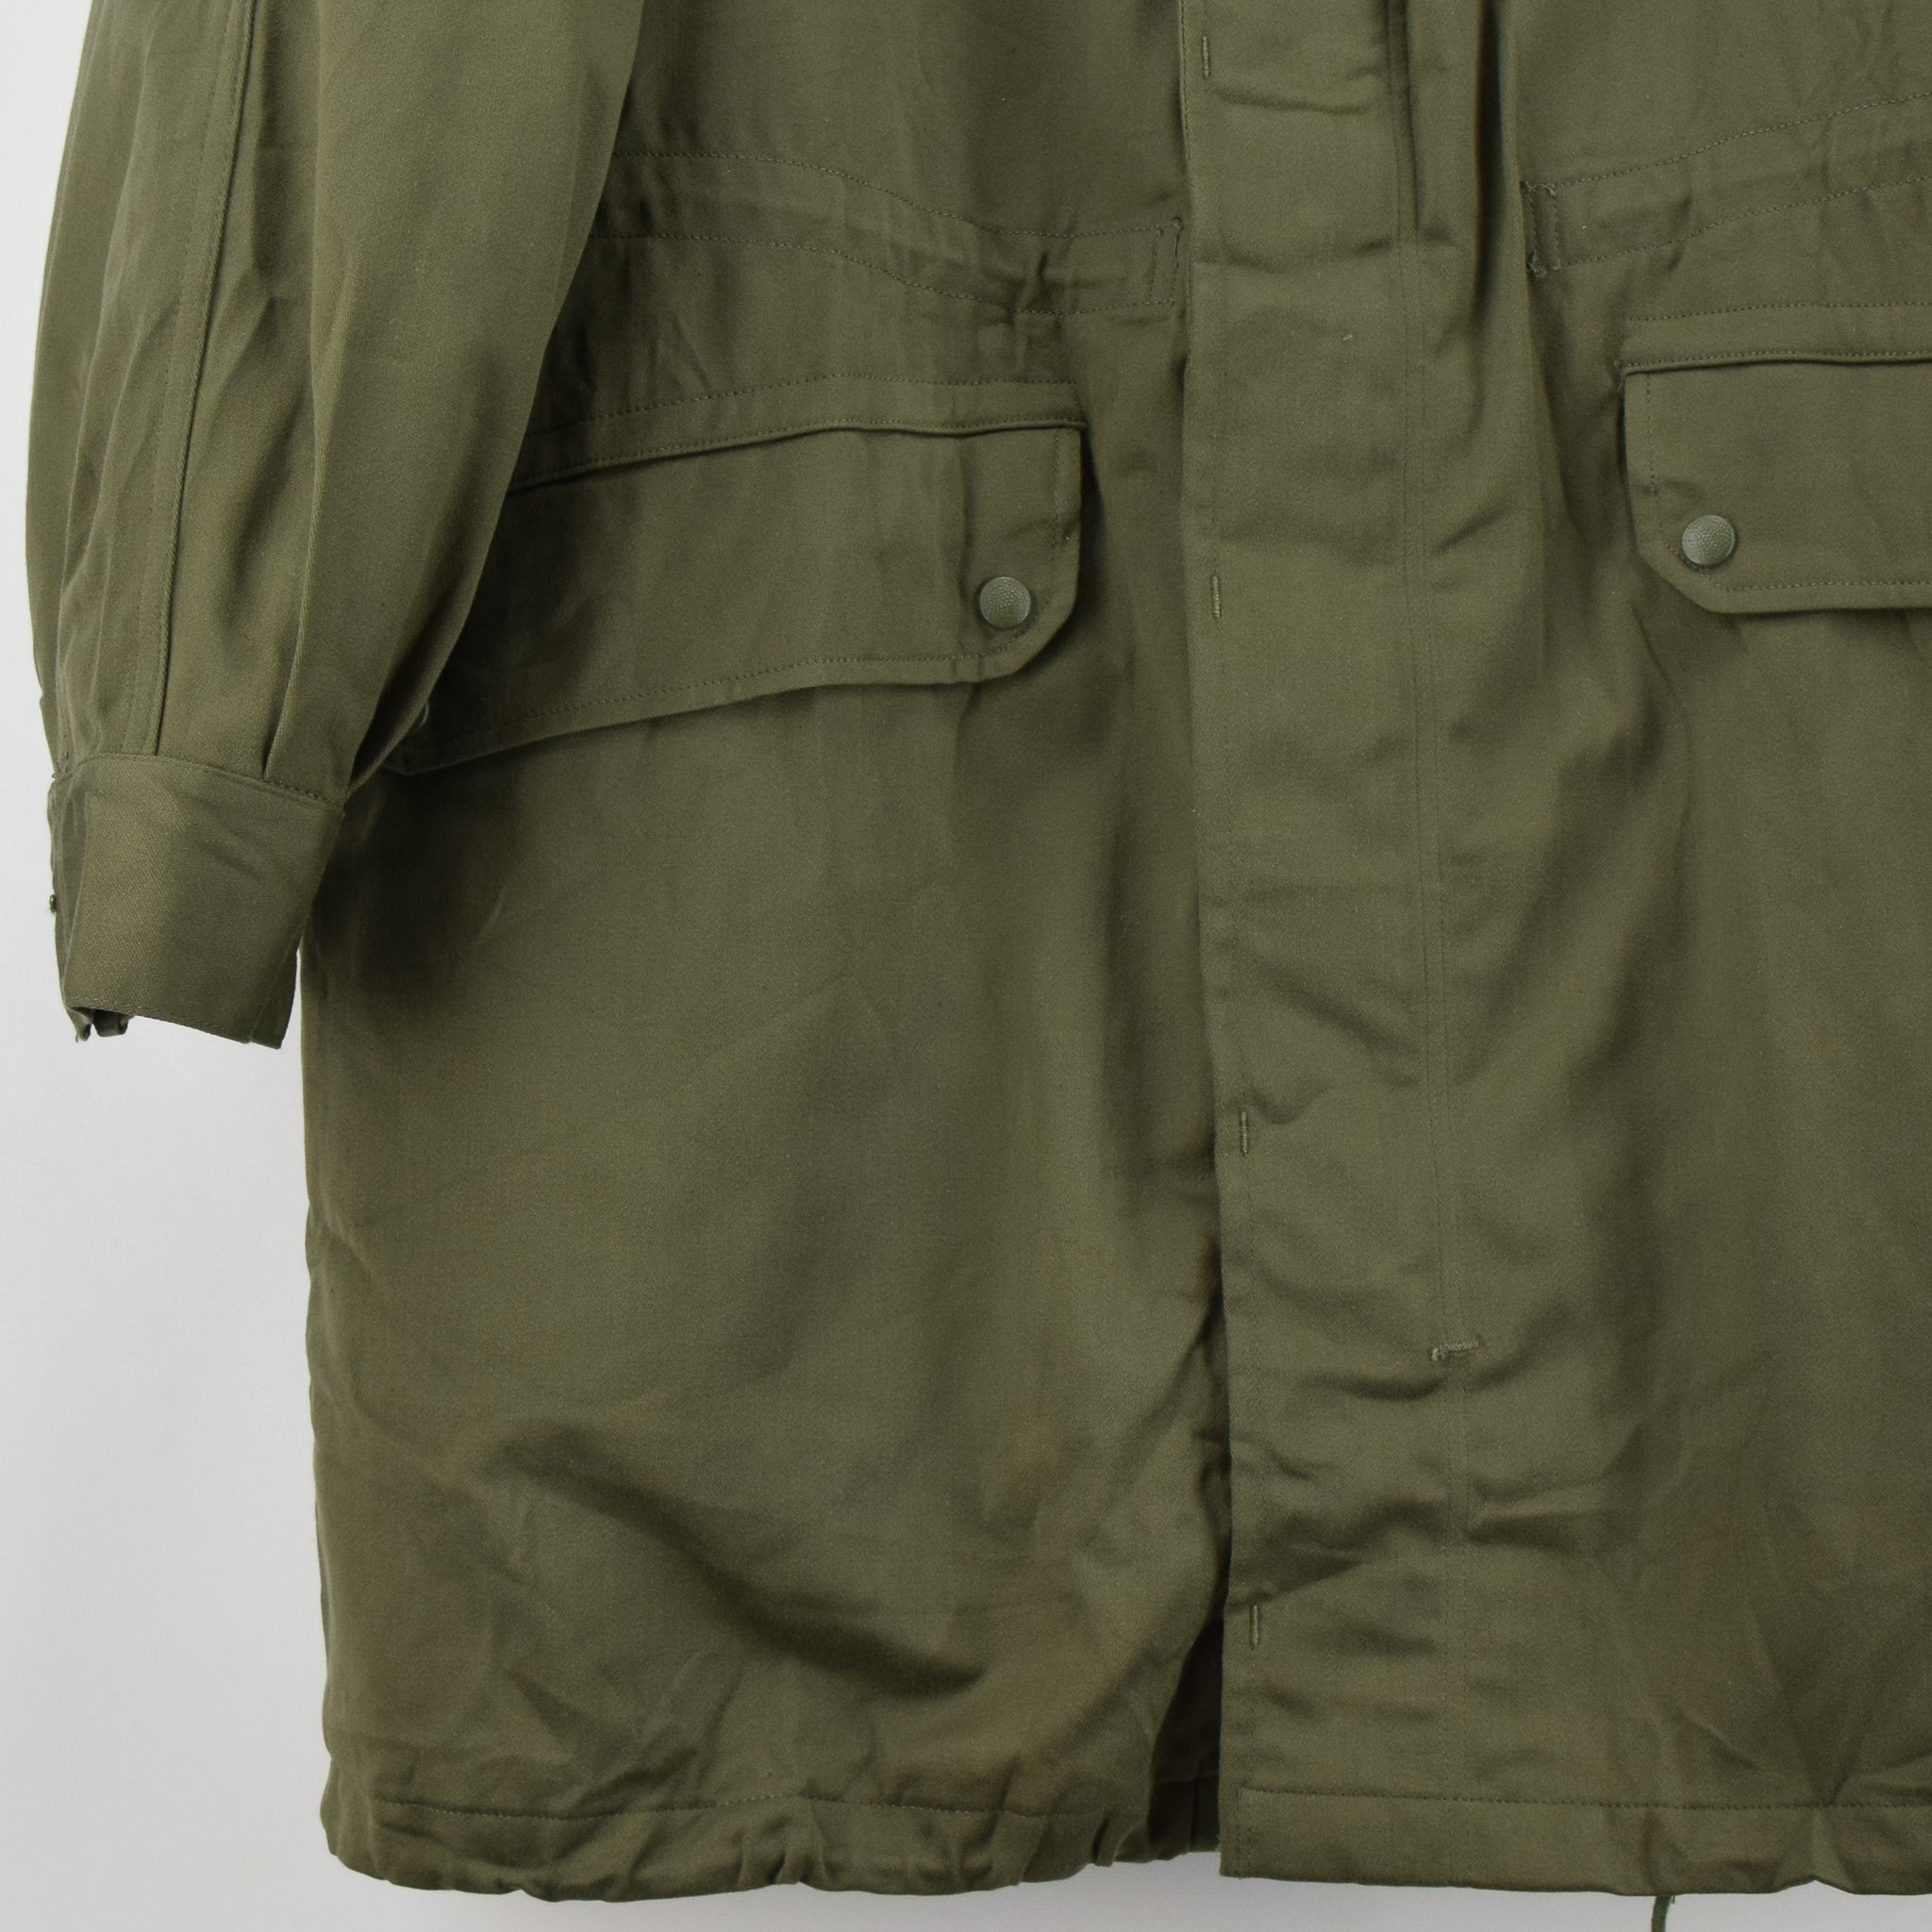 Vintage 1980s Deadstock French Army Armee Francaise Parka Jacket L / XL front hem